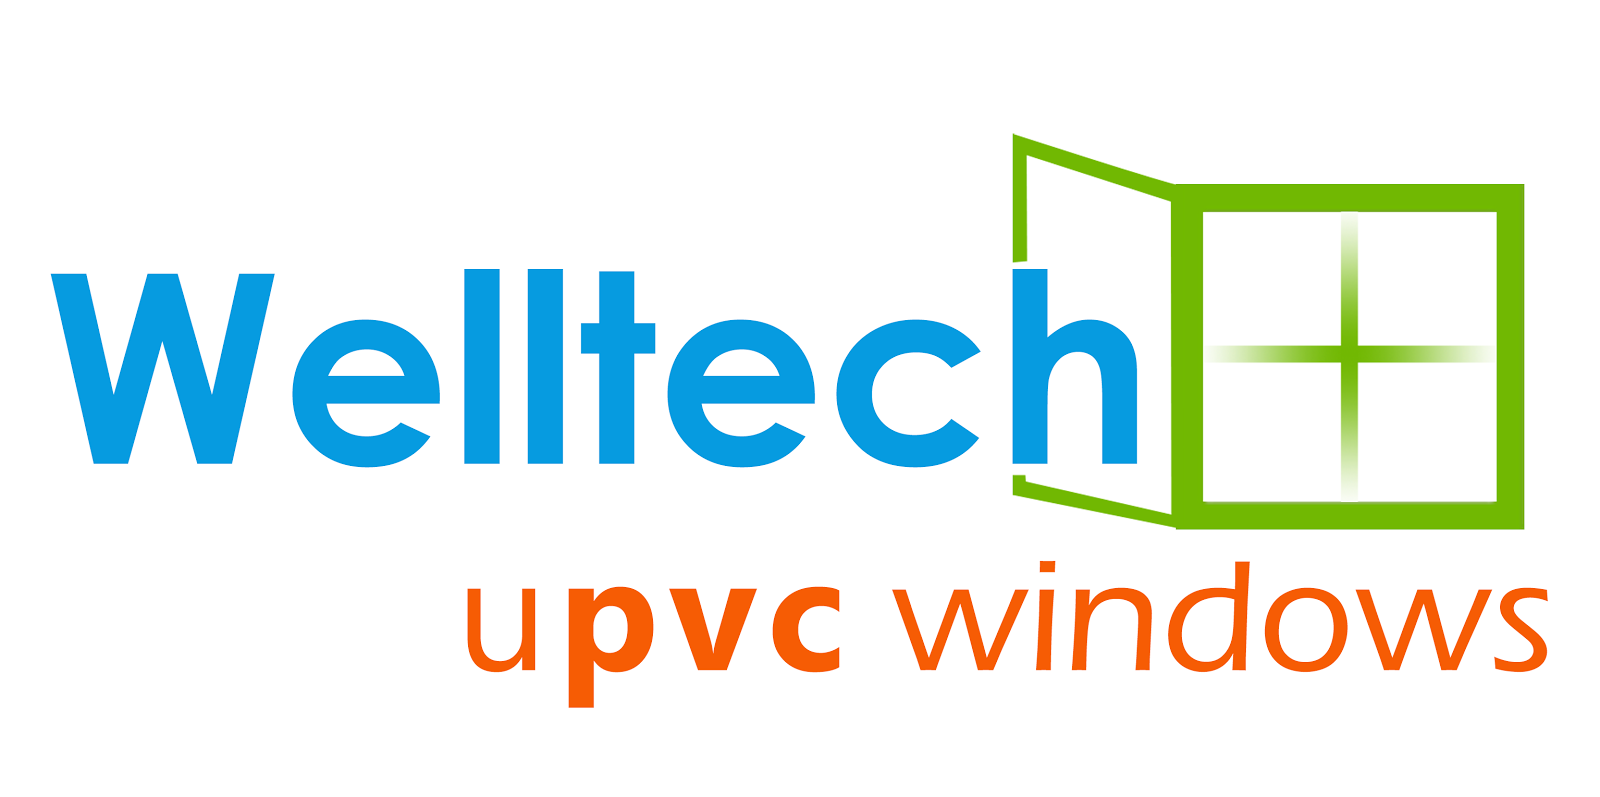 http://welltechsystems.com/upvc/upvc-windows.php